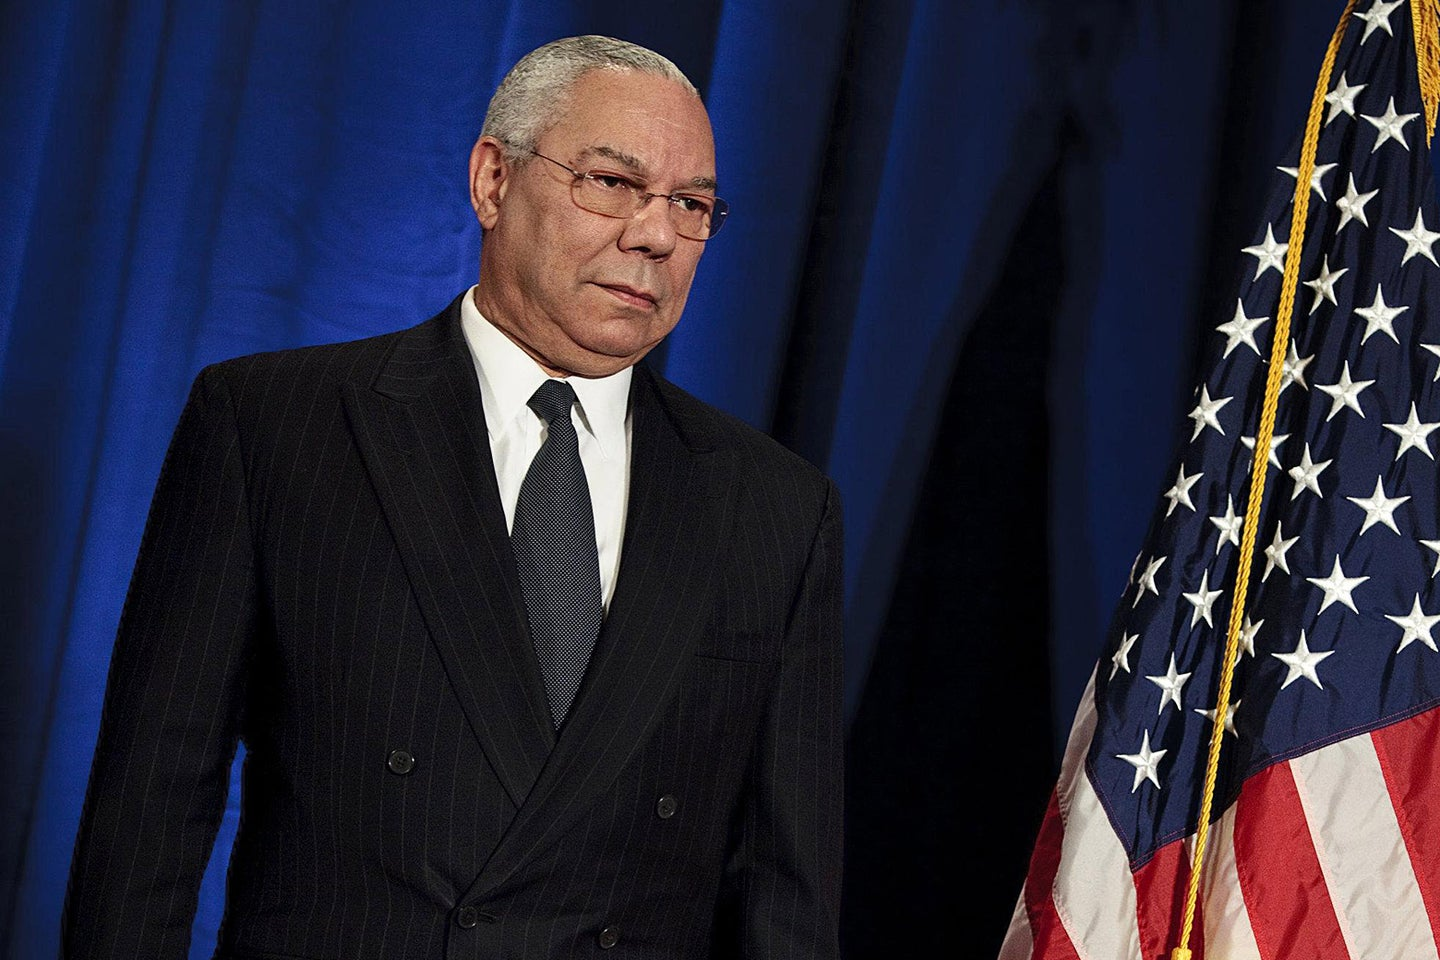 The Moment When Colin Powell Squandered His Career